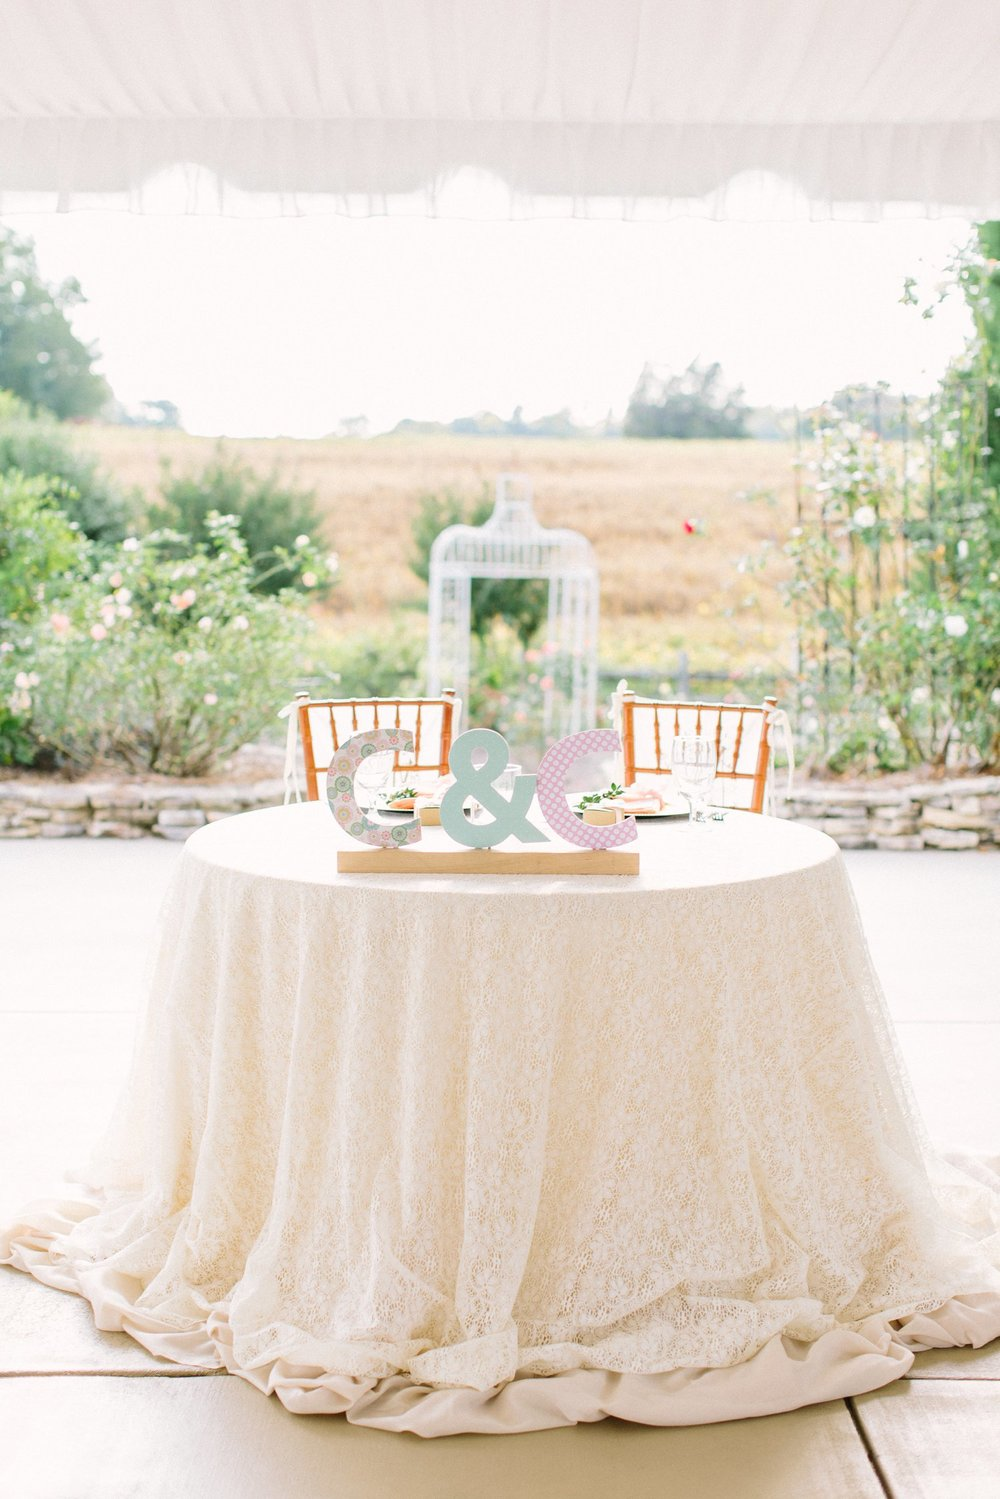 lindsey_a_miller_photography_villa_franca_wedding_north_carolina_estate_china_grove_pink_45.jpg